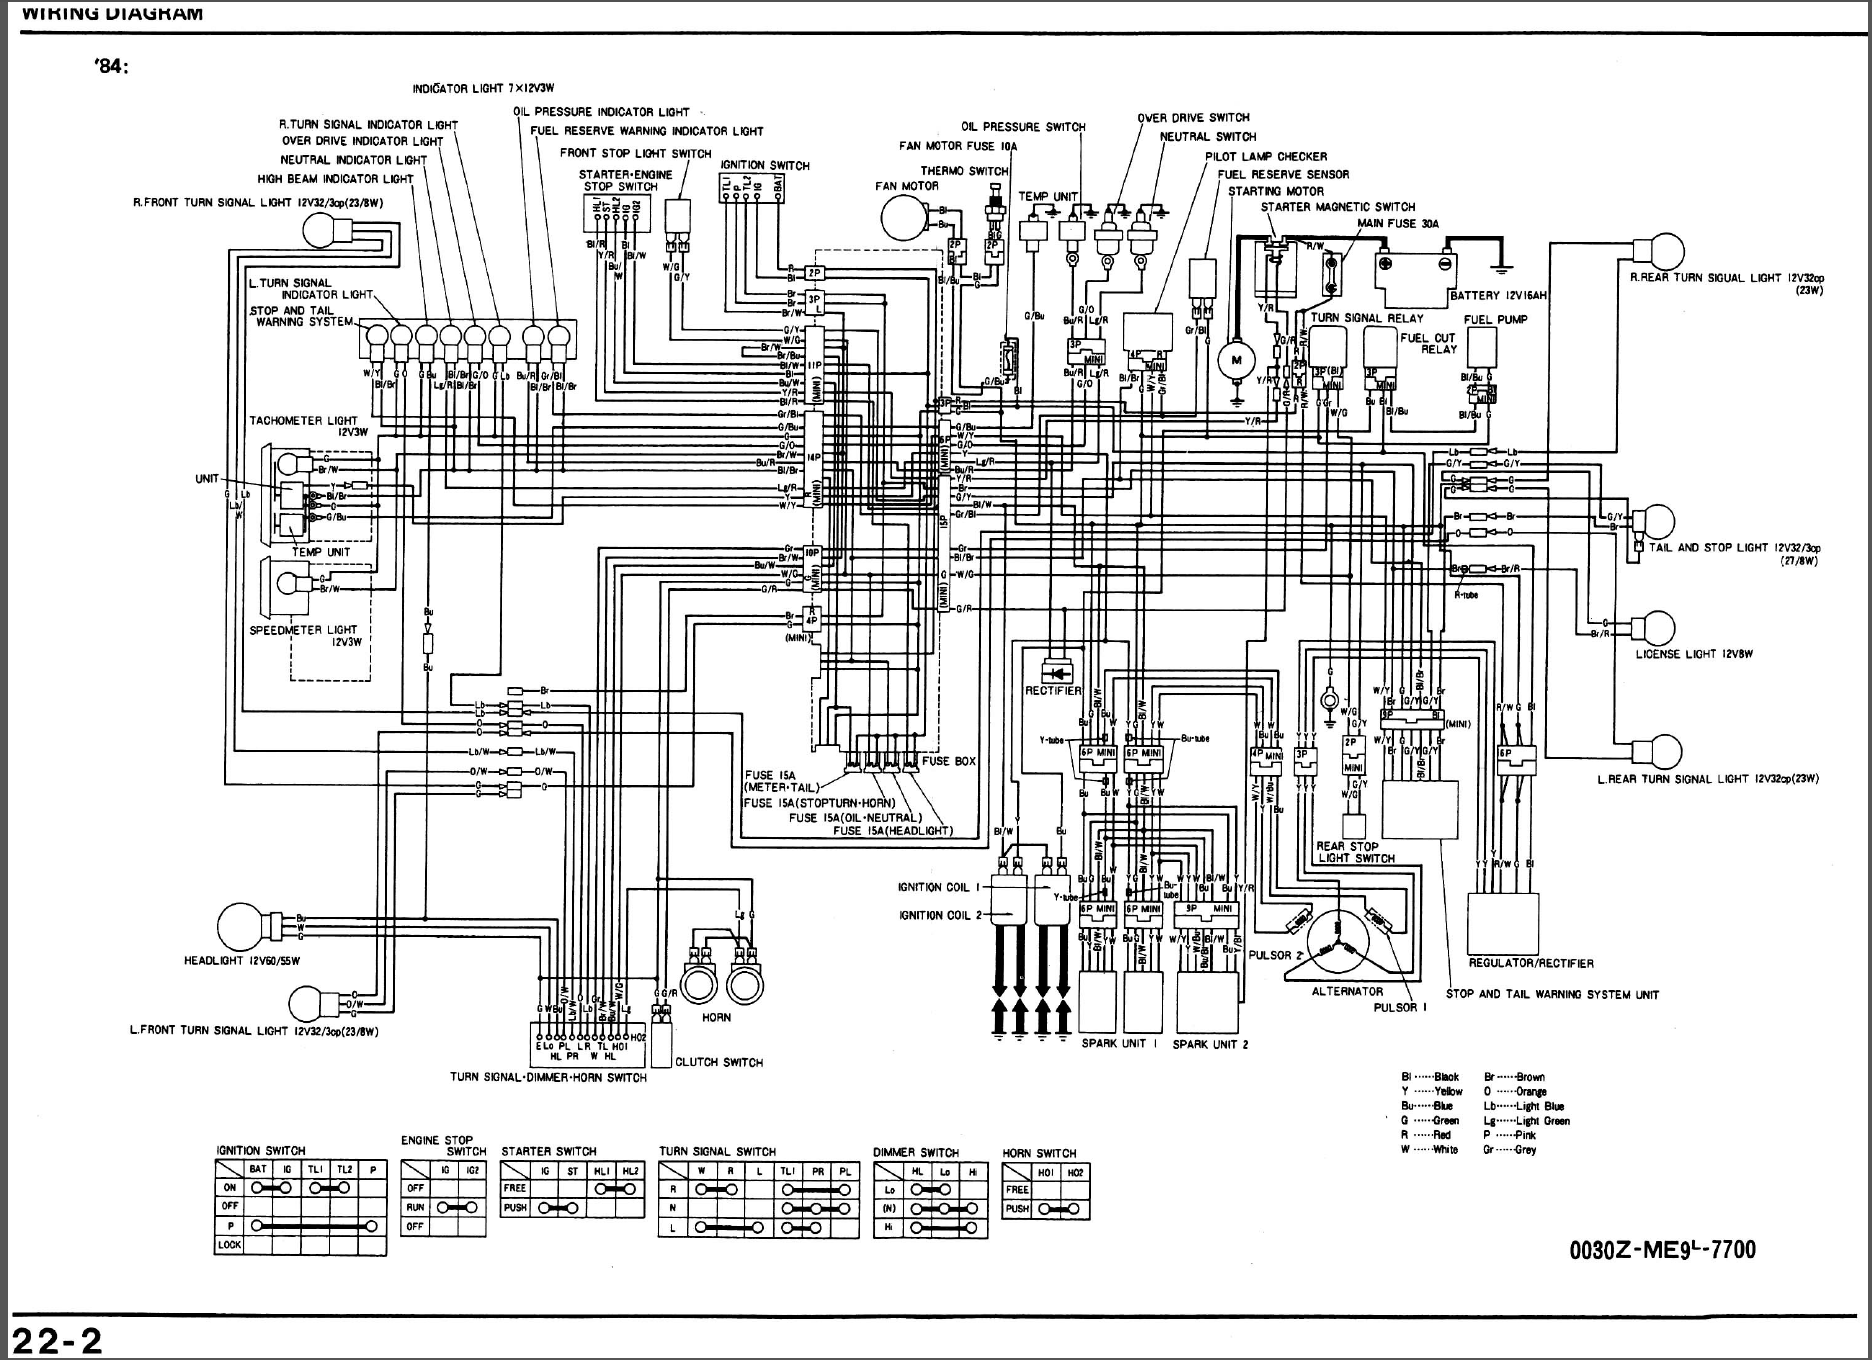 hight resolution of honda ft500 ignition wiring diagram index listing of wiring diagramshonda ascot ft500 wiring diagram schematic diagramhonda